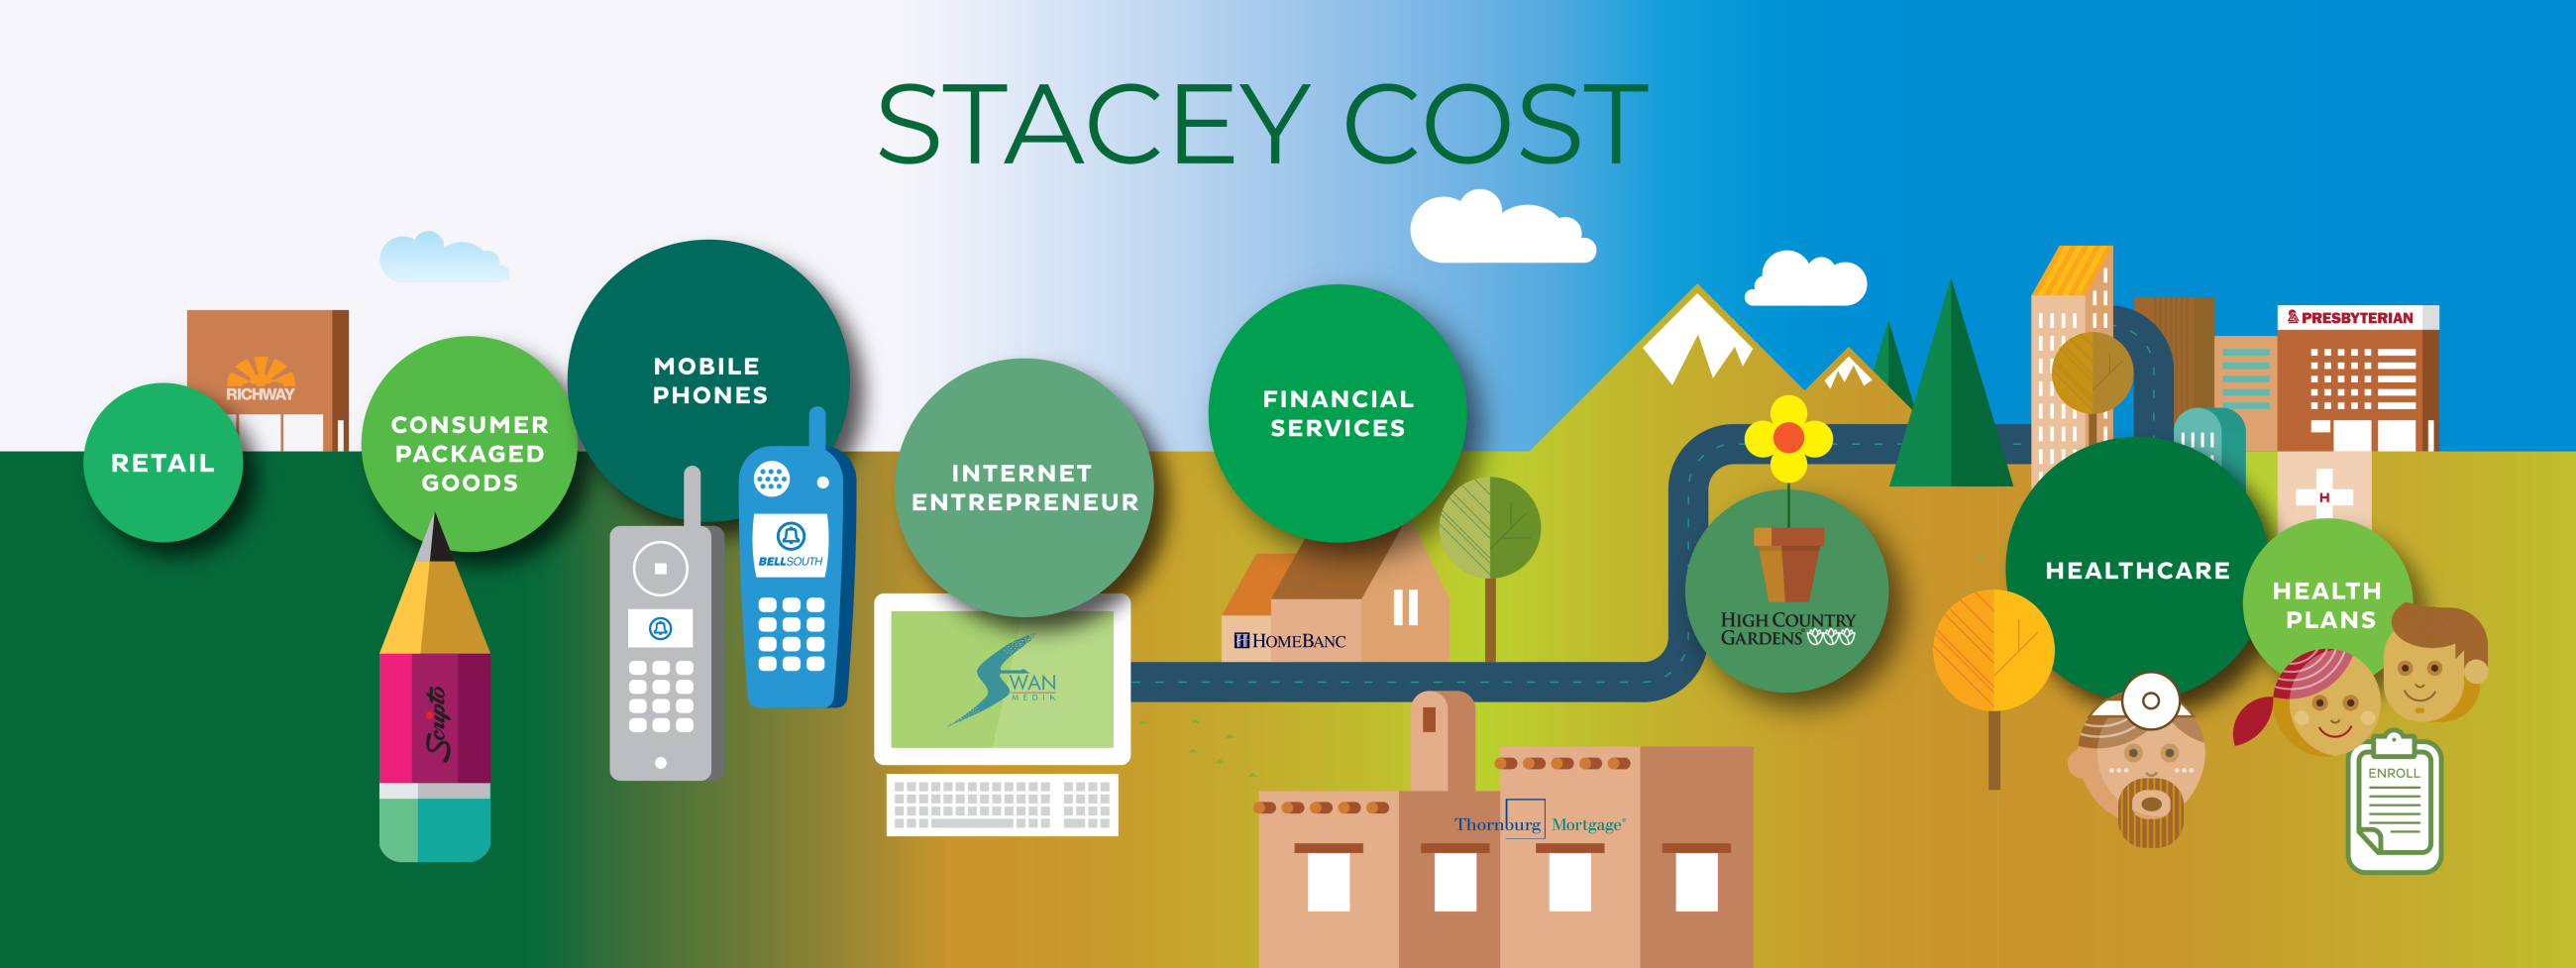 Stacey Cost